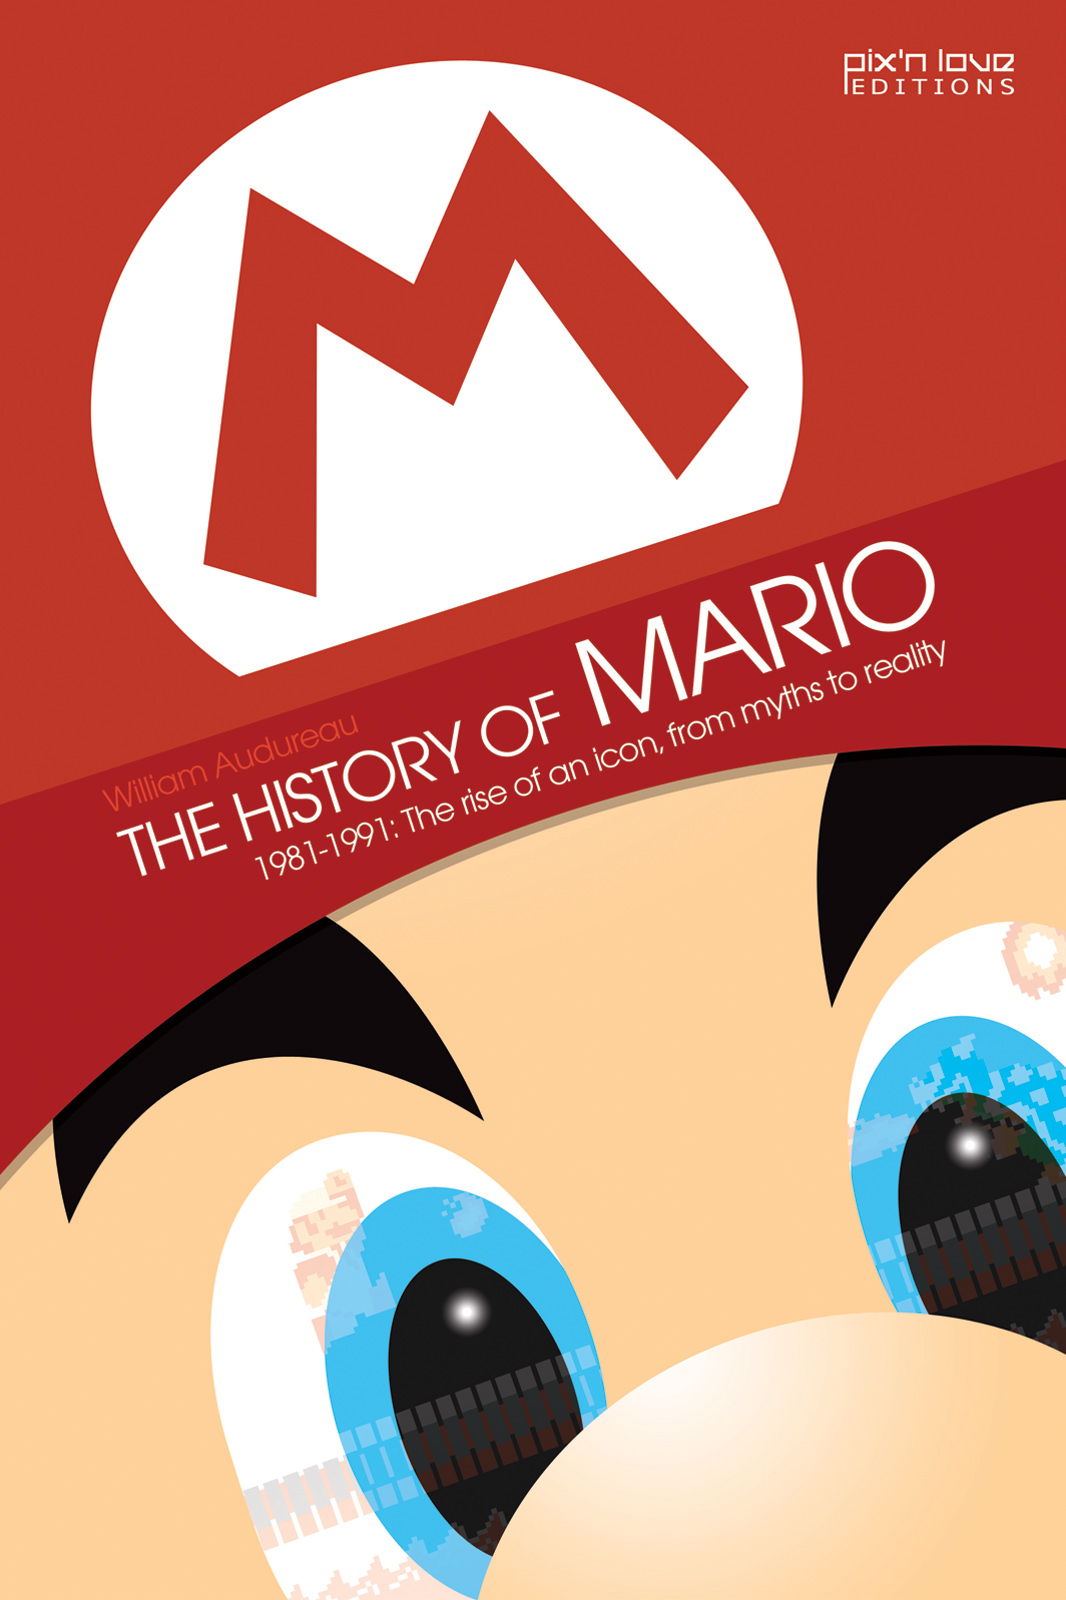 HISTORY OF MARIO TP VOL 01 1981-1991 RISE OF AN ICON FROM MY